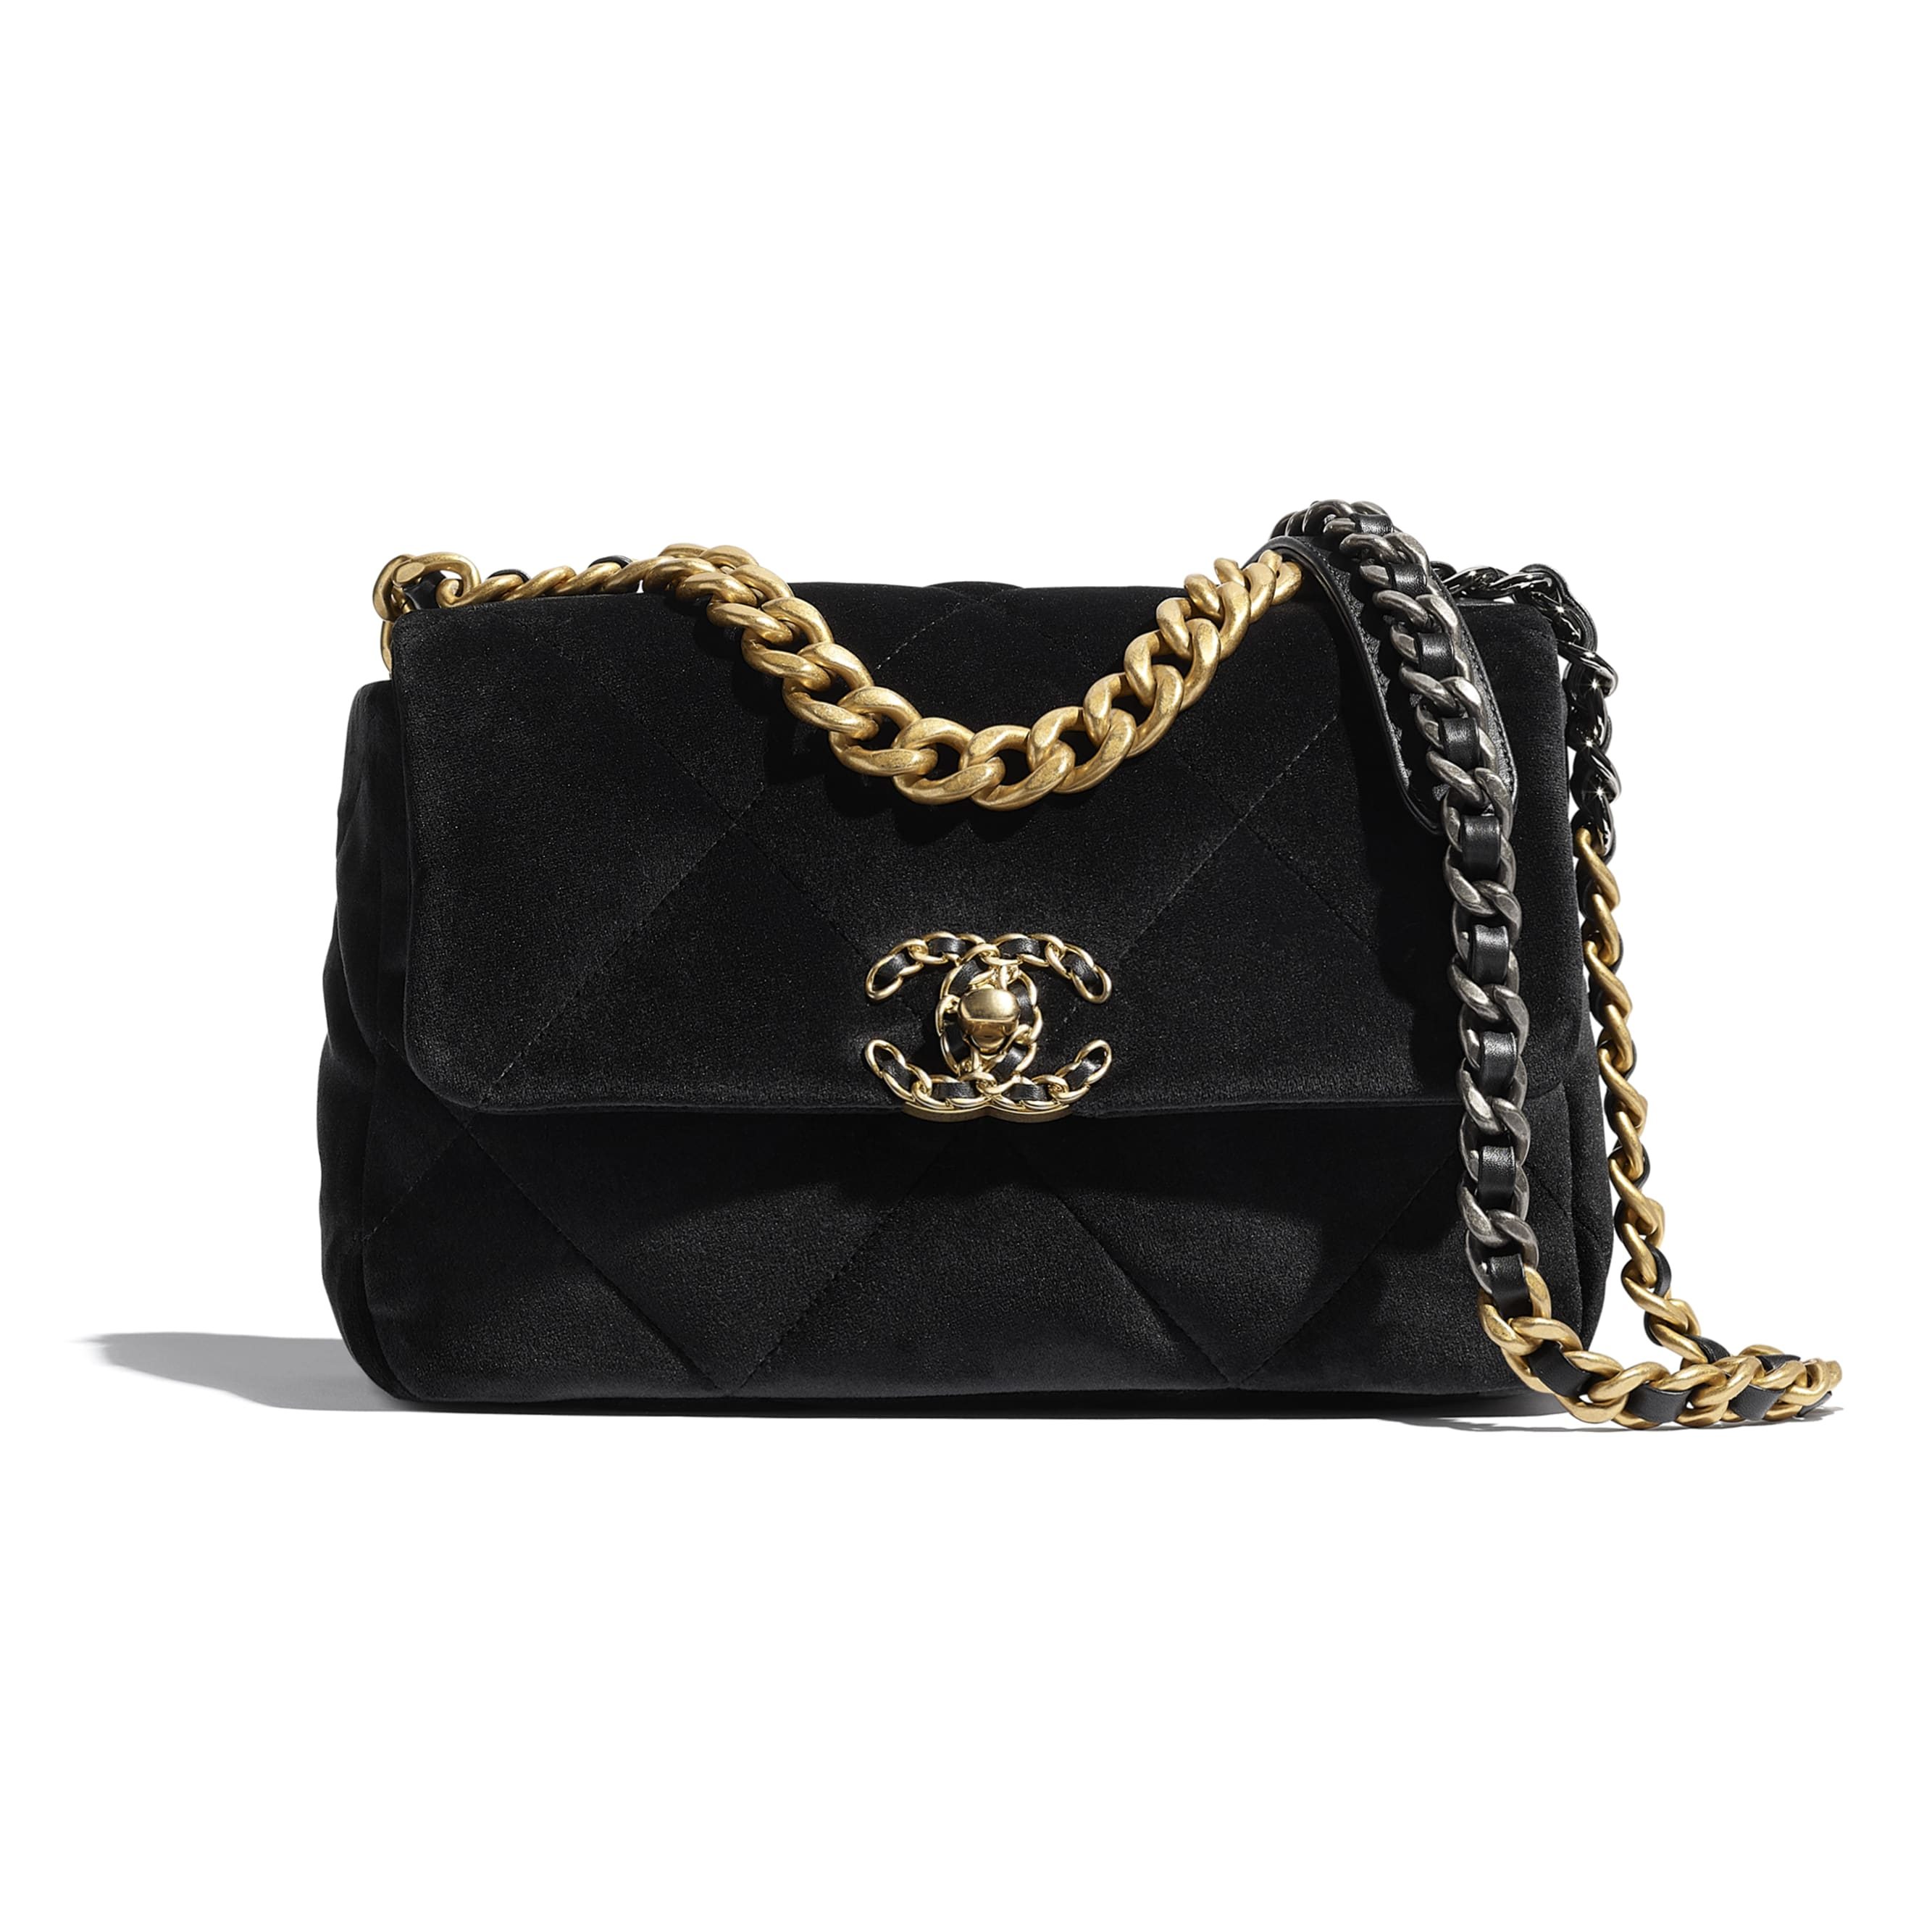 CHANEL 19 Flap Bag - Black - Velvet, Black & Gold-Tone Metal - CHANEL - Default view - see standard sized version